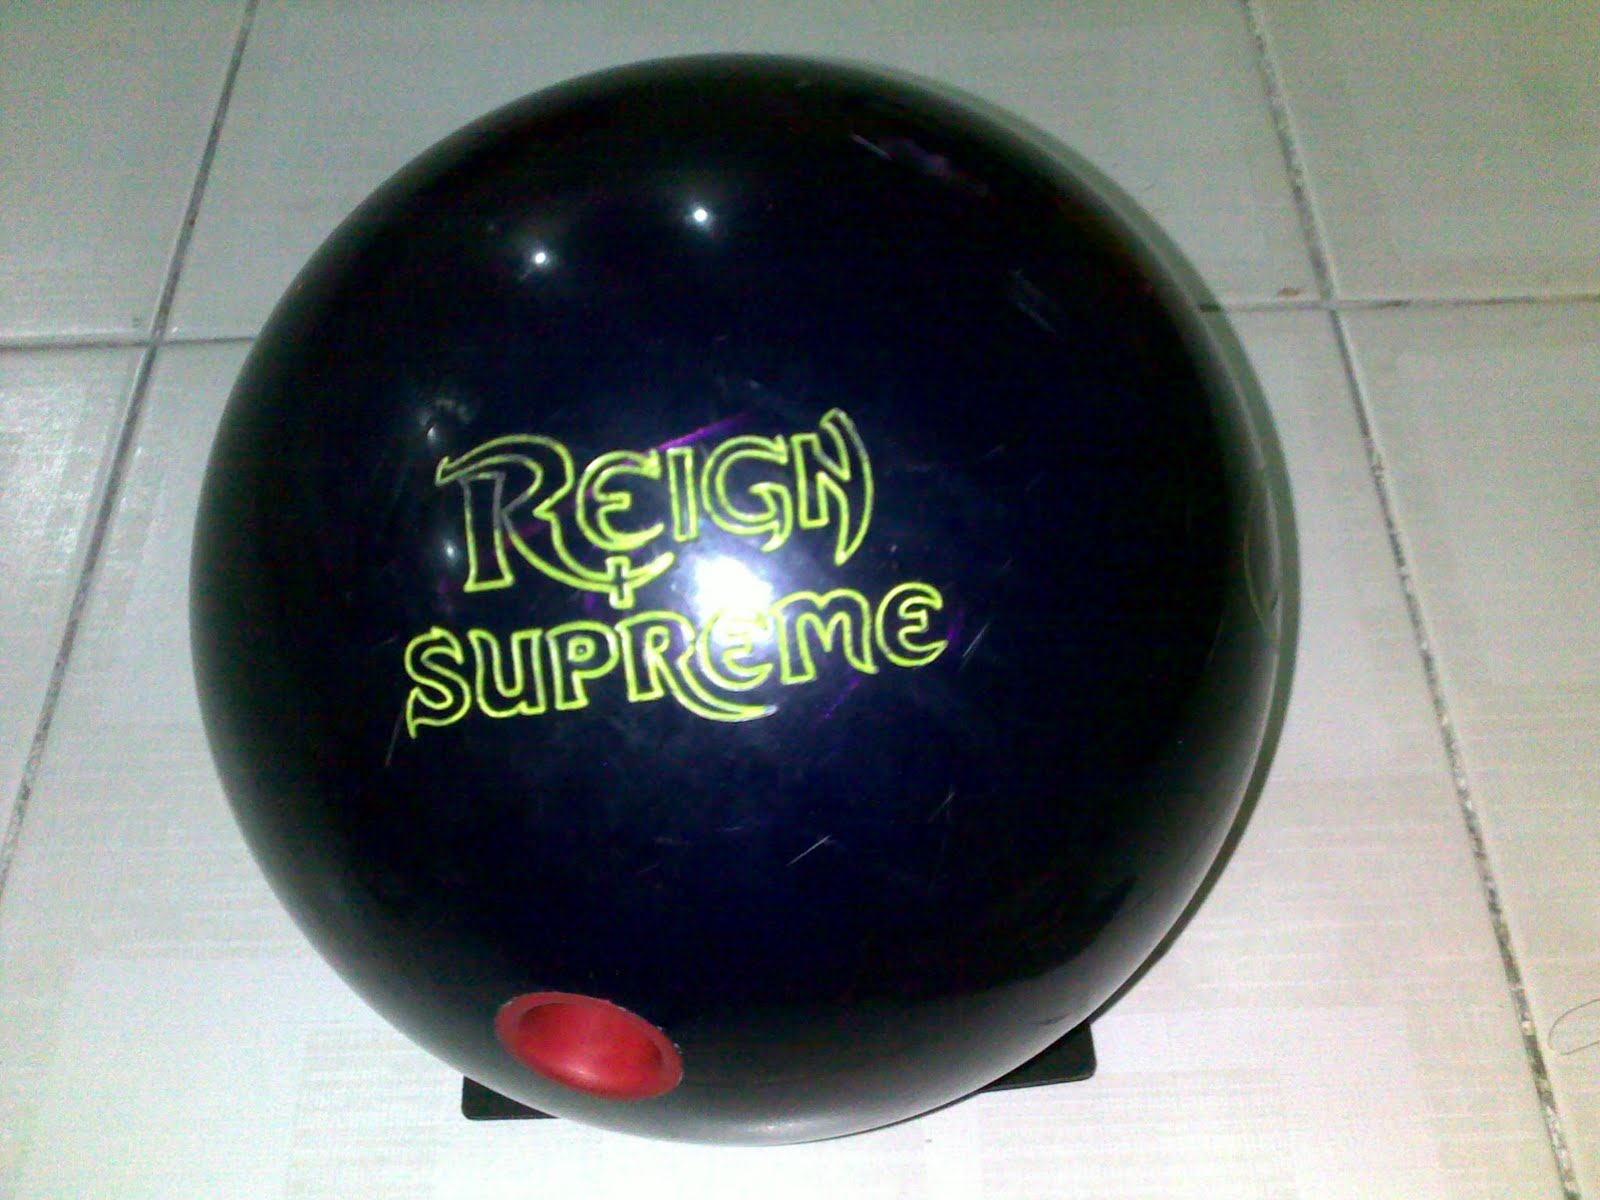 Performance Storm Reign Supreme Bowling Balls 14 Lbs